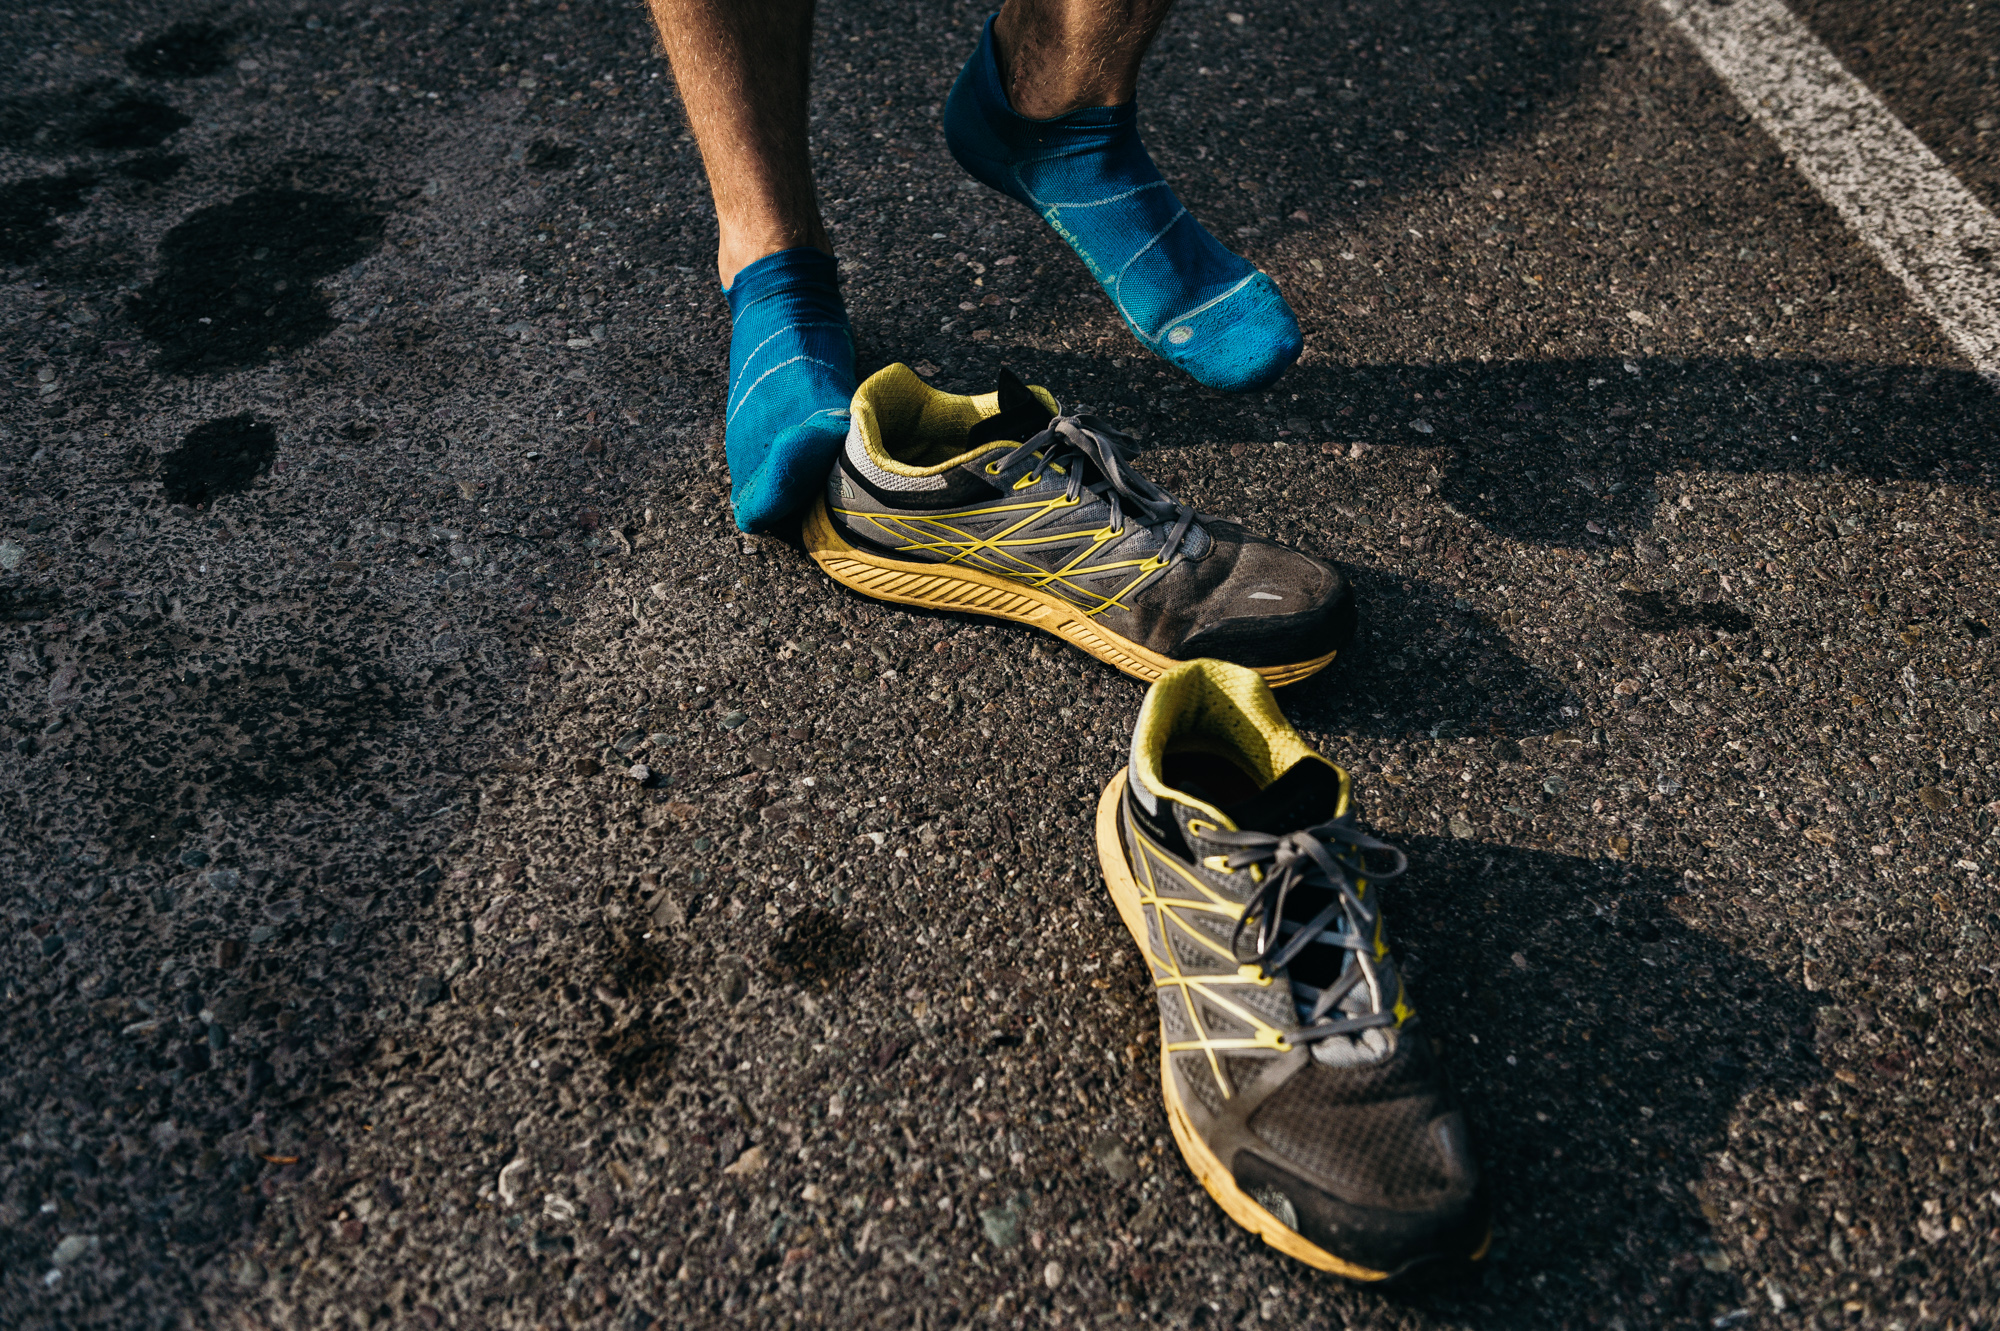 Running Shoes Detail - Greg Mionske - Advertising and Editorial Photographer in Denver